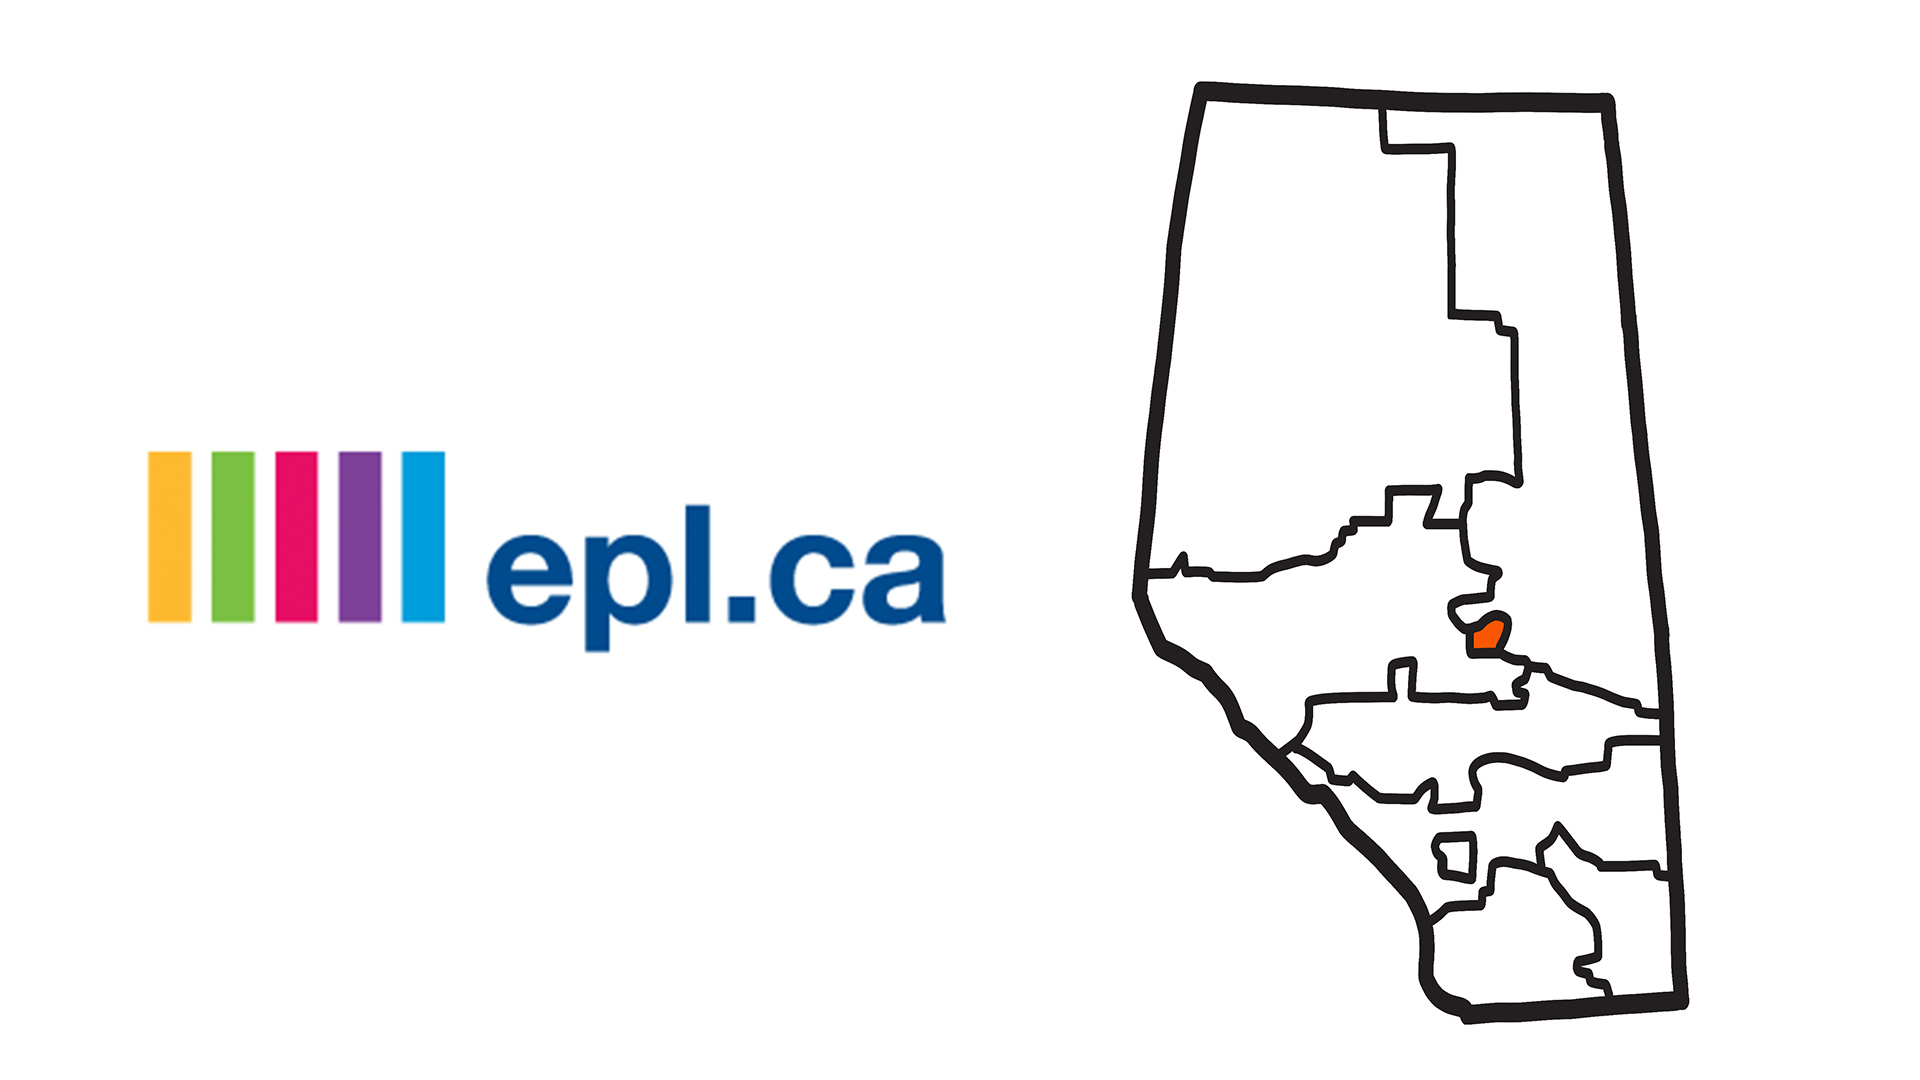 Edmonton Public Library System and Map